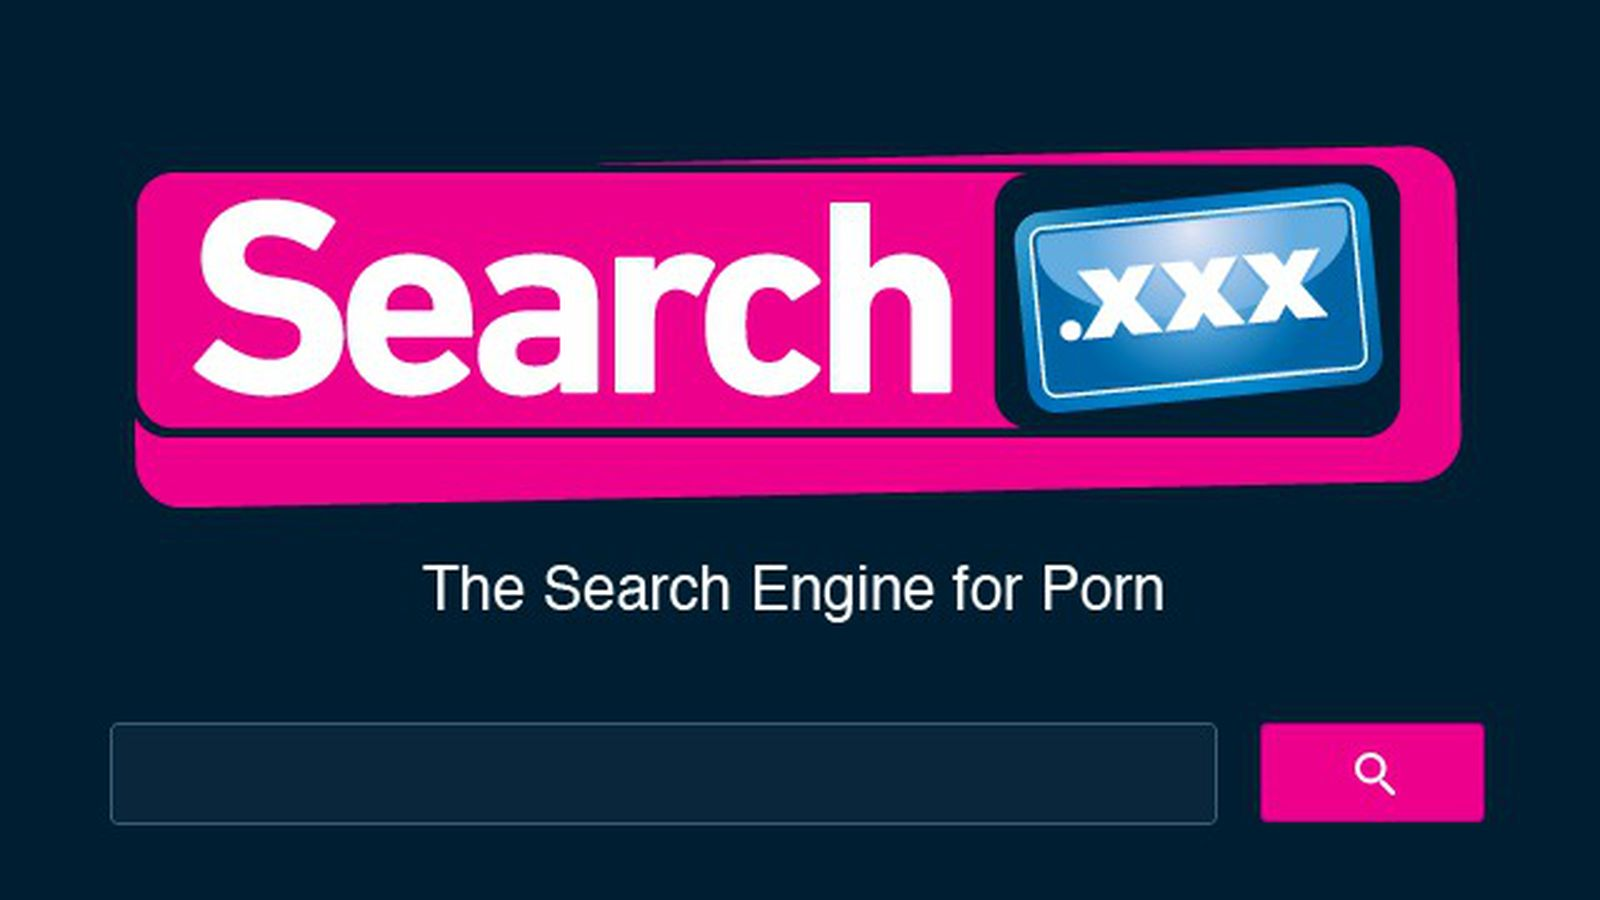 Shemale sex search engines